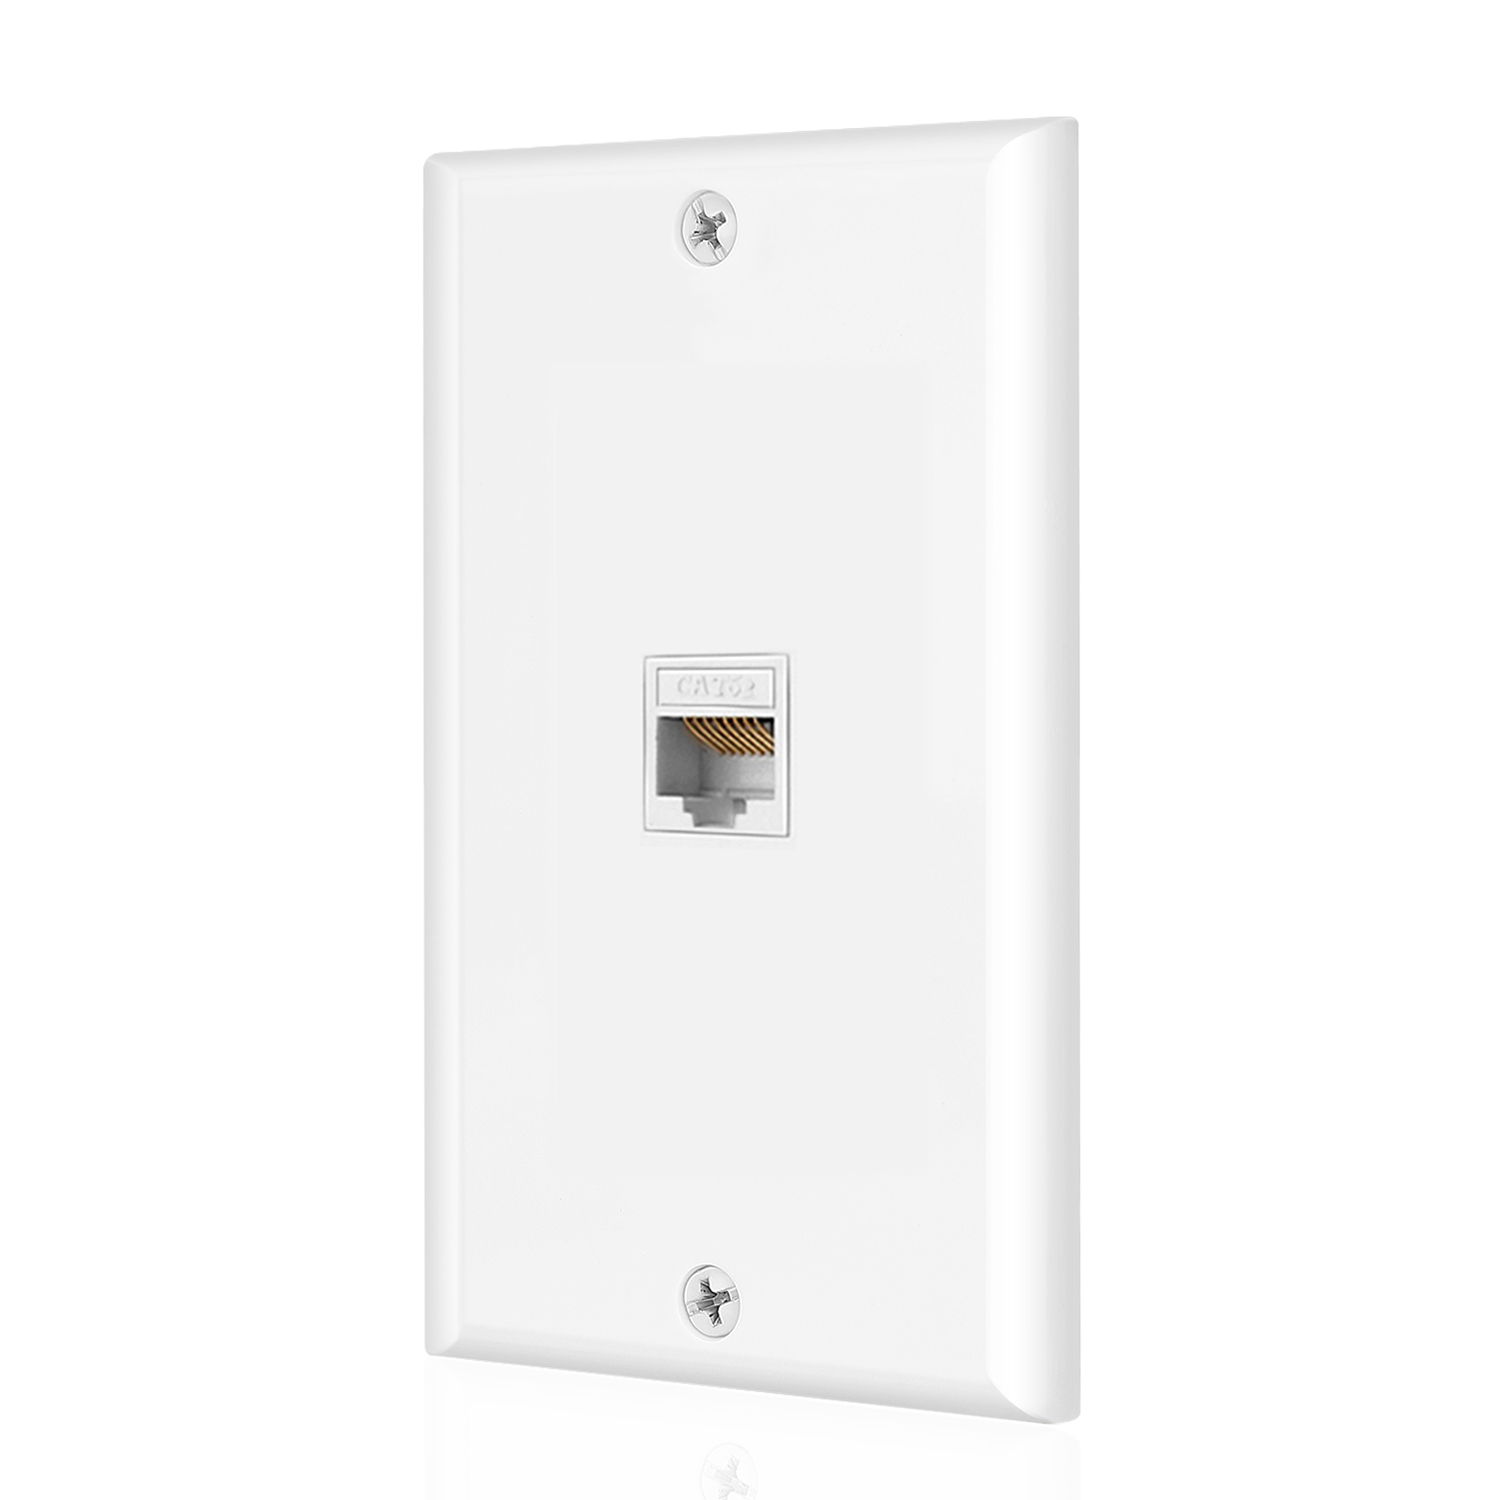 Ethernet Cat6 Wall Plate 1 Port Single Gang Plug w/ Low